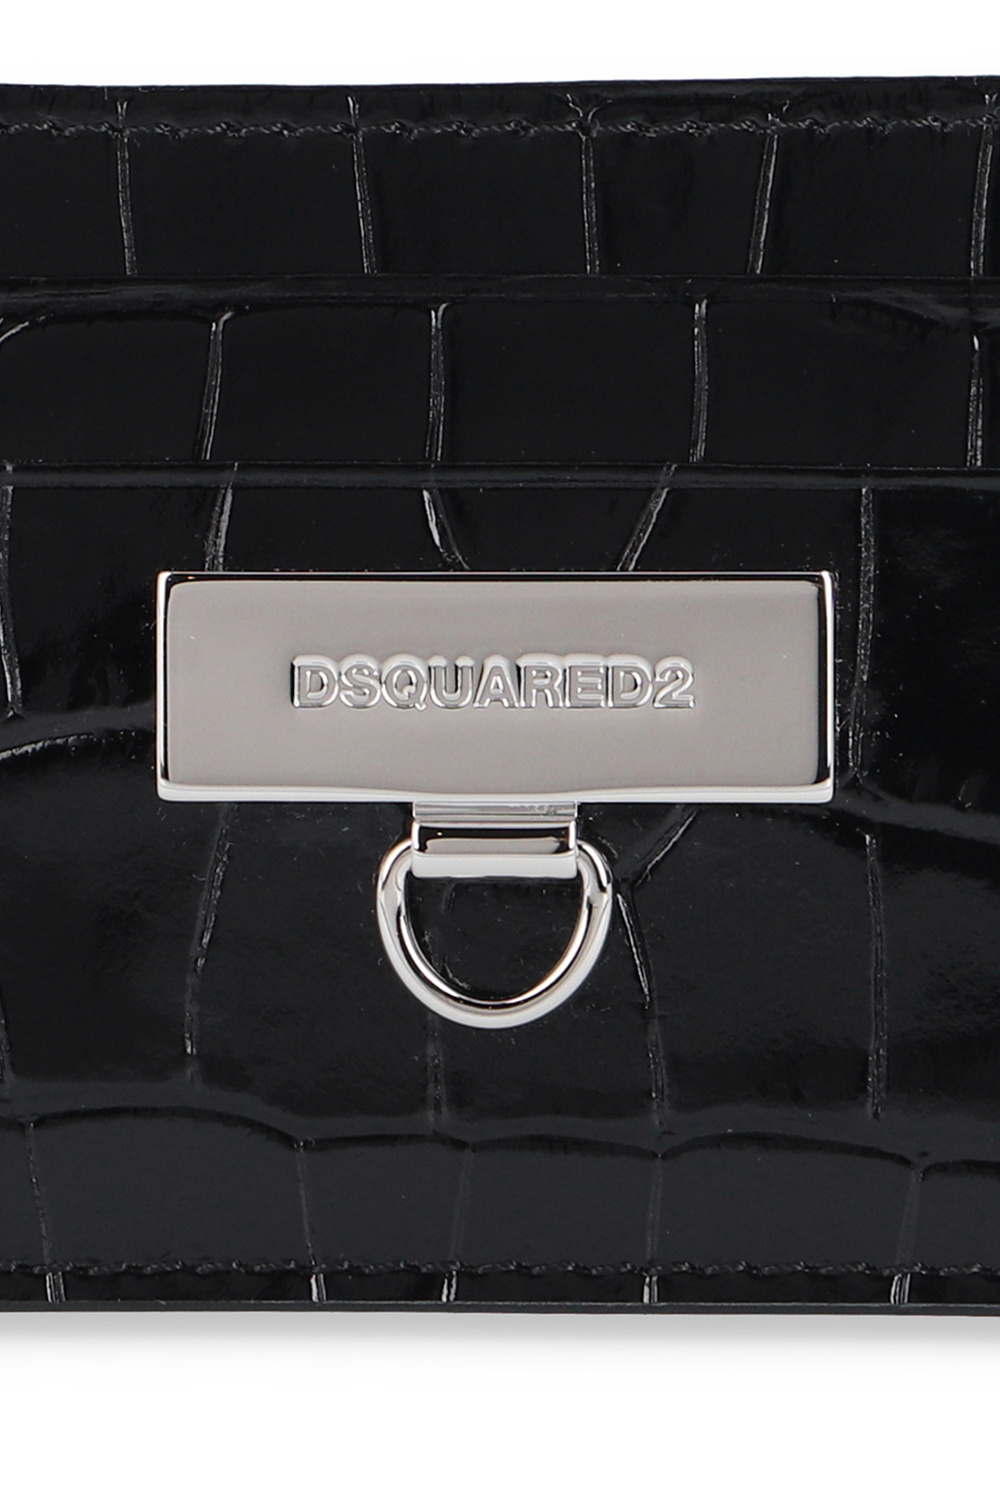 Dsquared2 Card case with logo